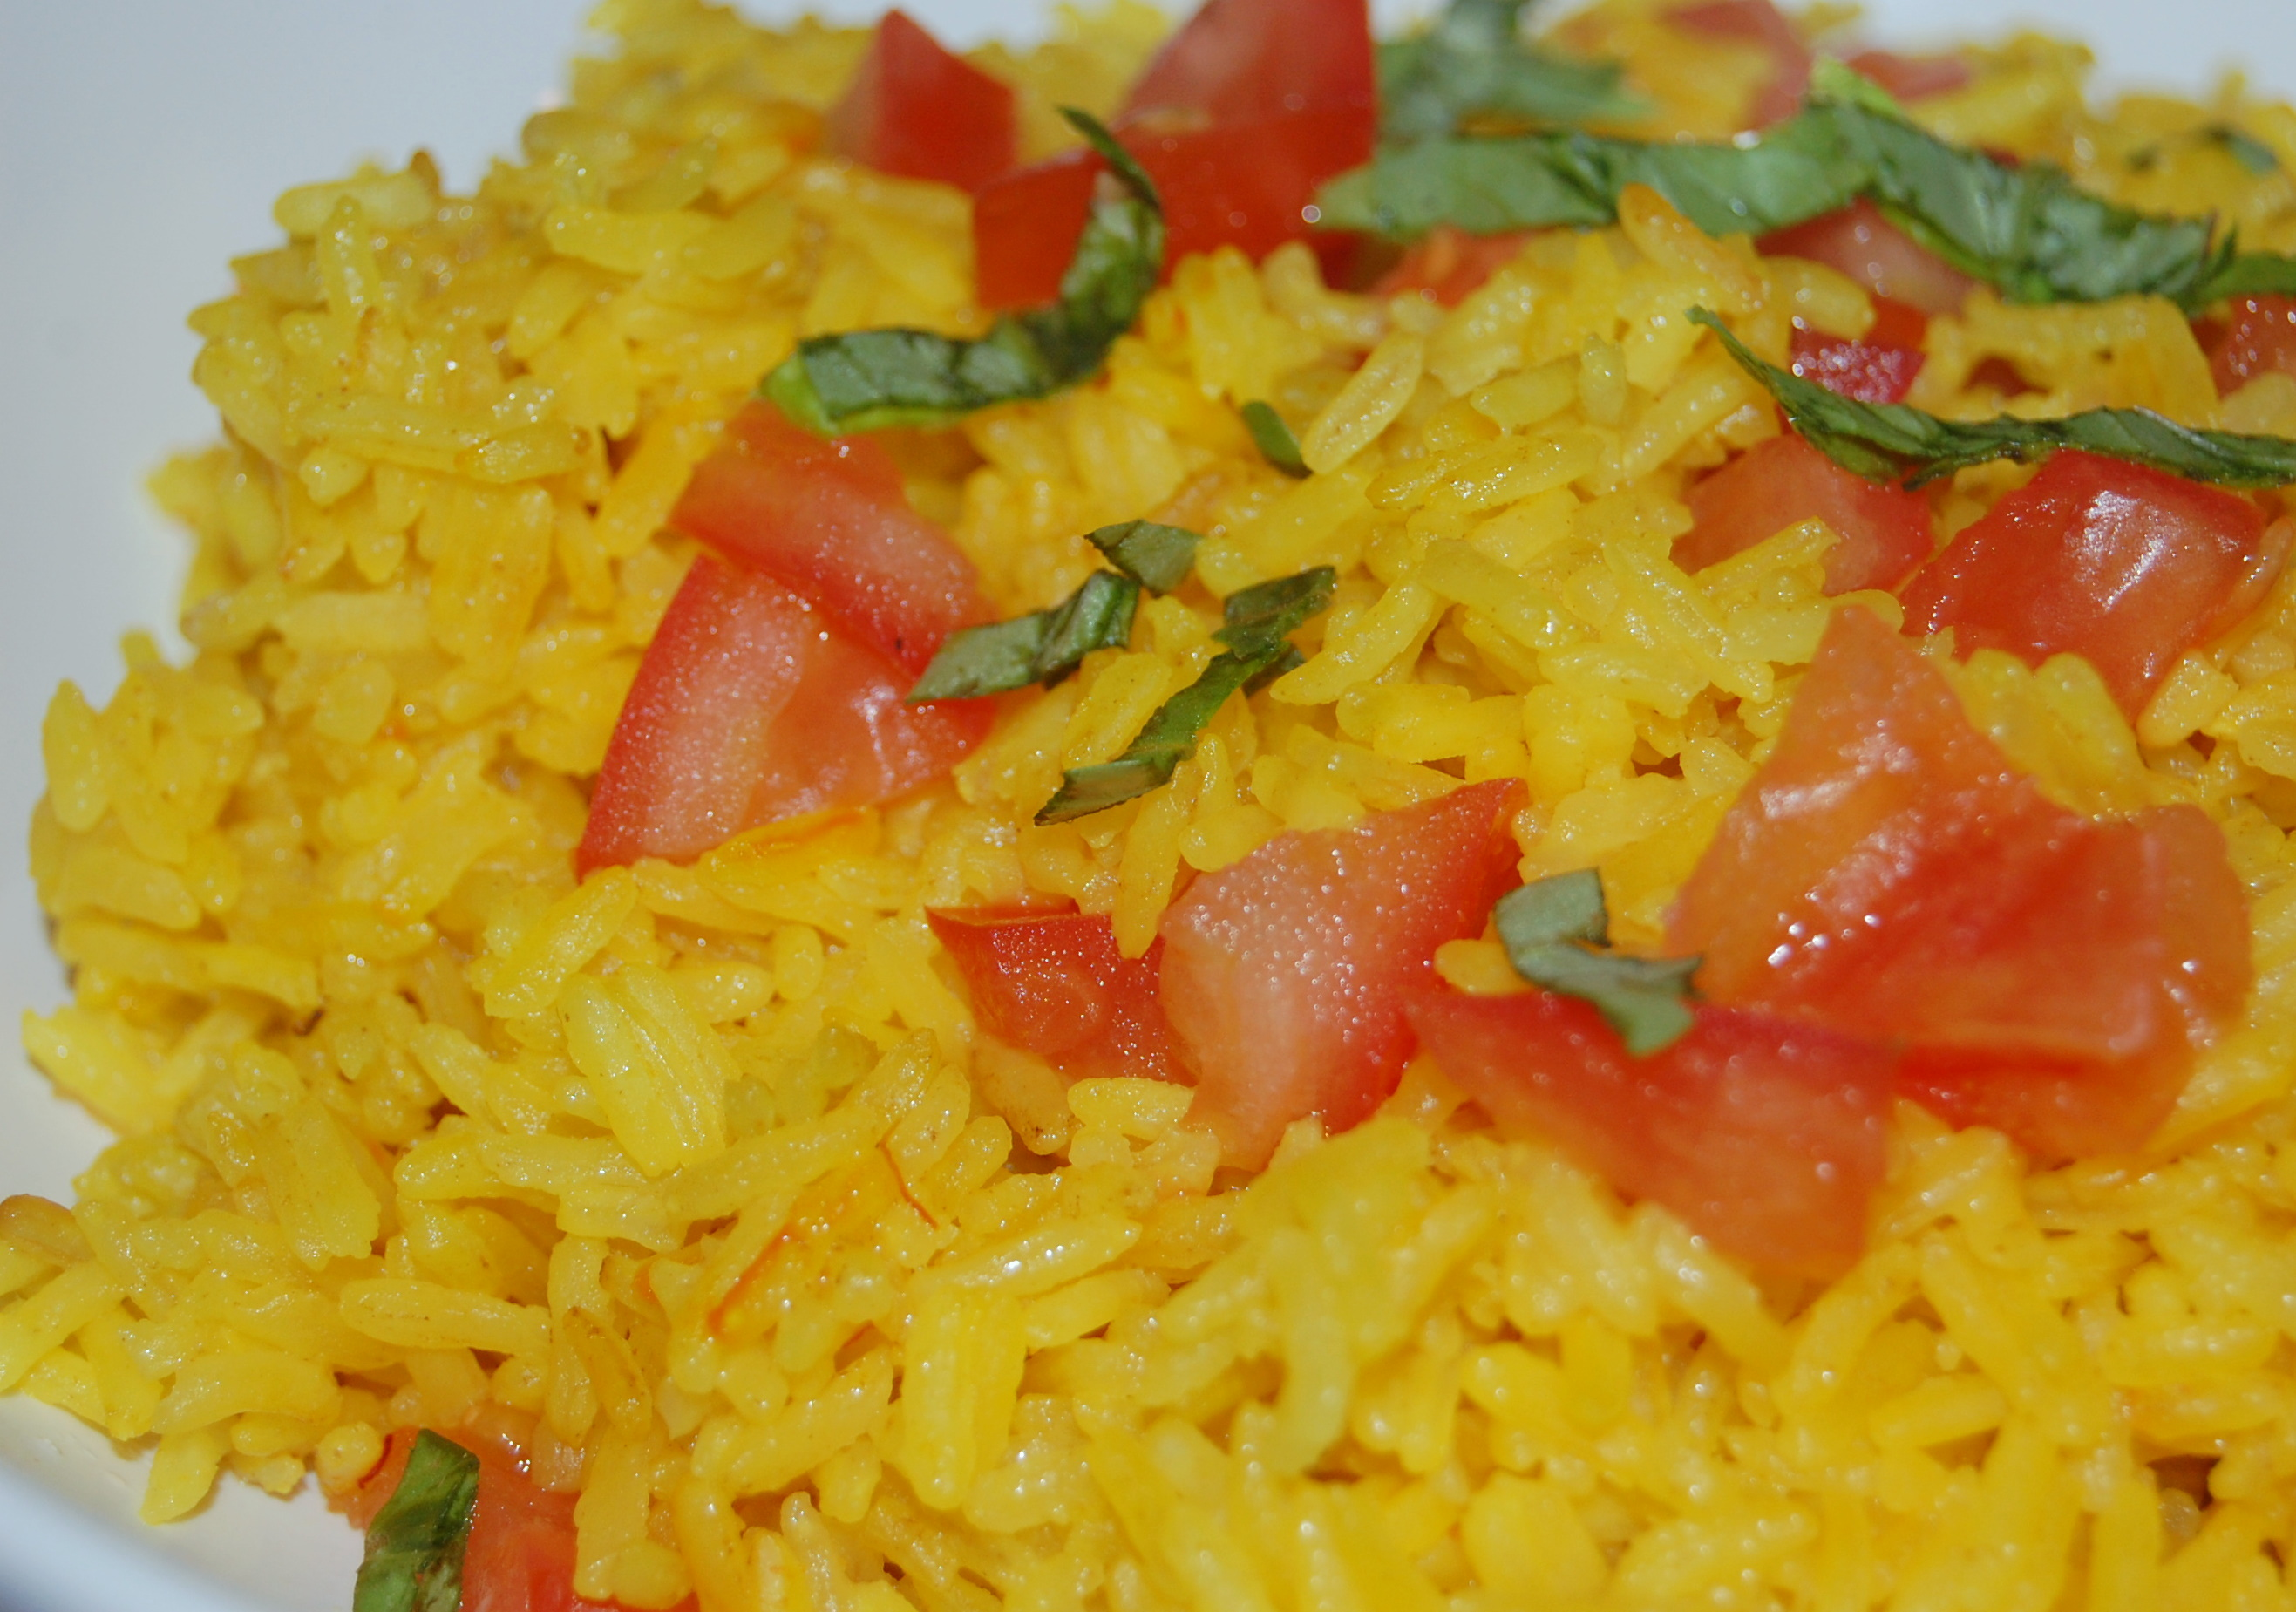 saffron-infused-rice-with-basil-and-tomatoes